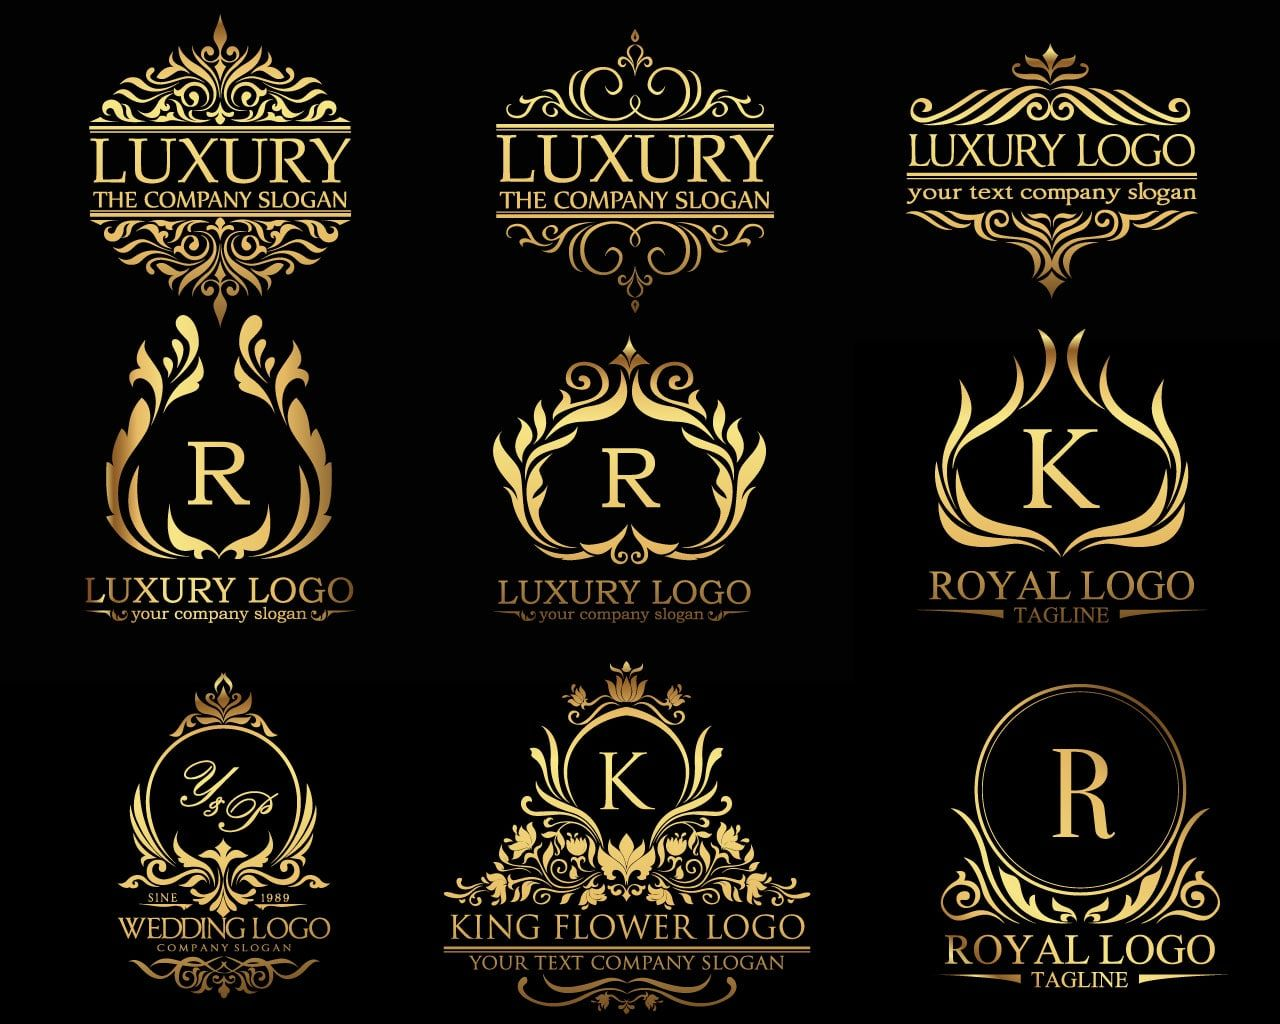 Design Luxury Classic Royal Logo Luxury Logo Royal Logo Luxury Logo Design